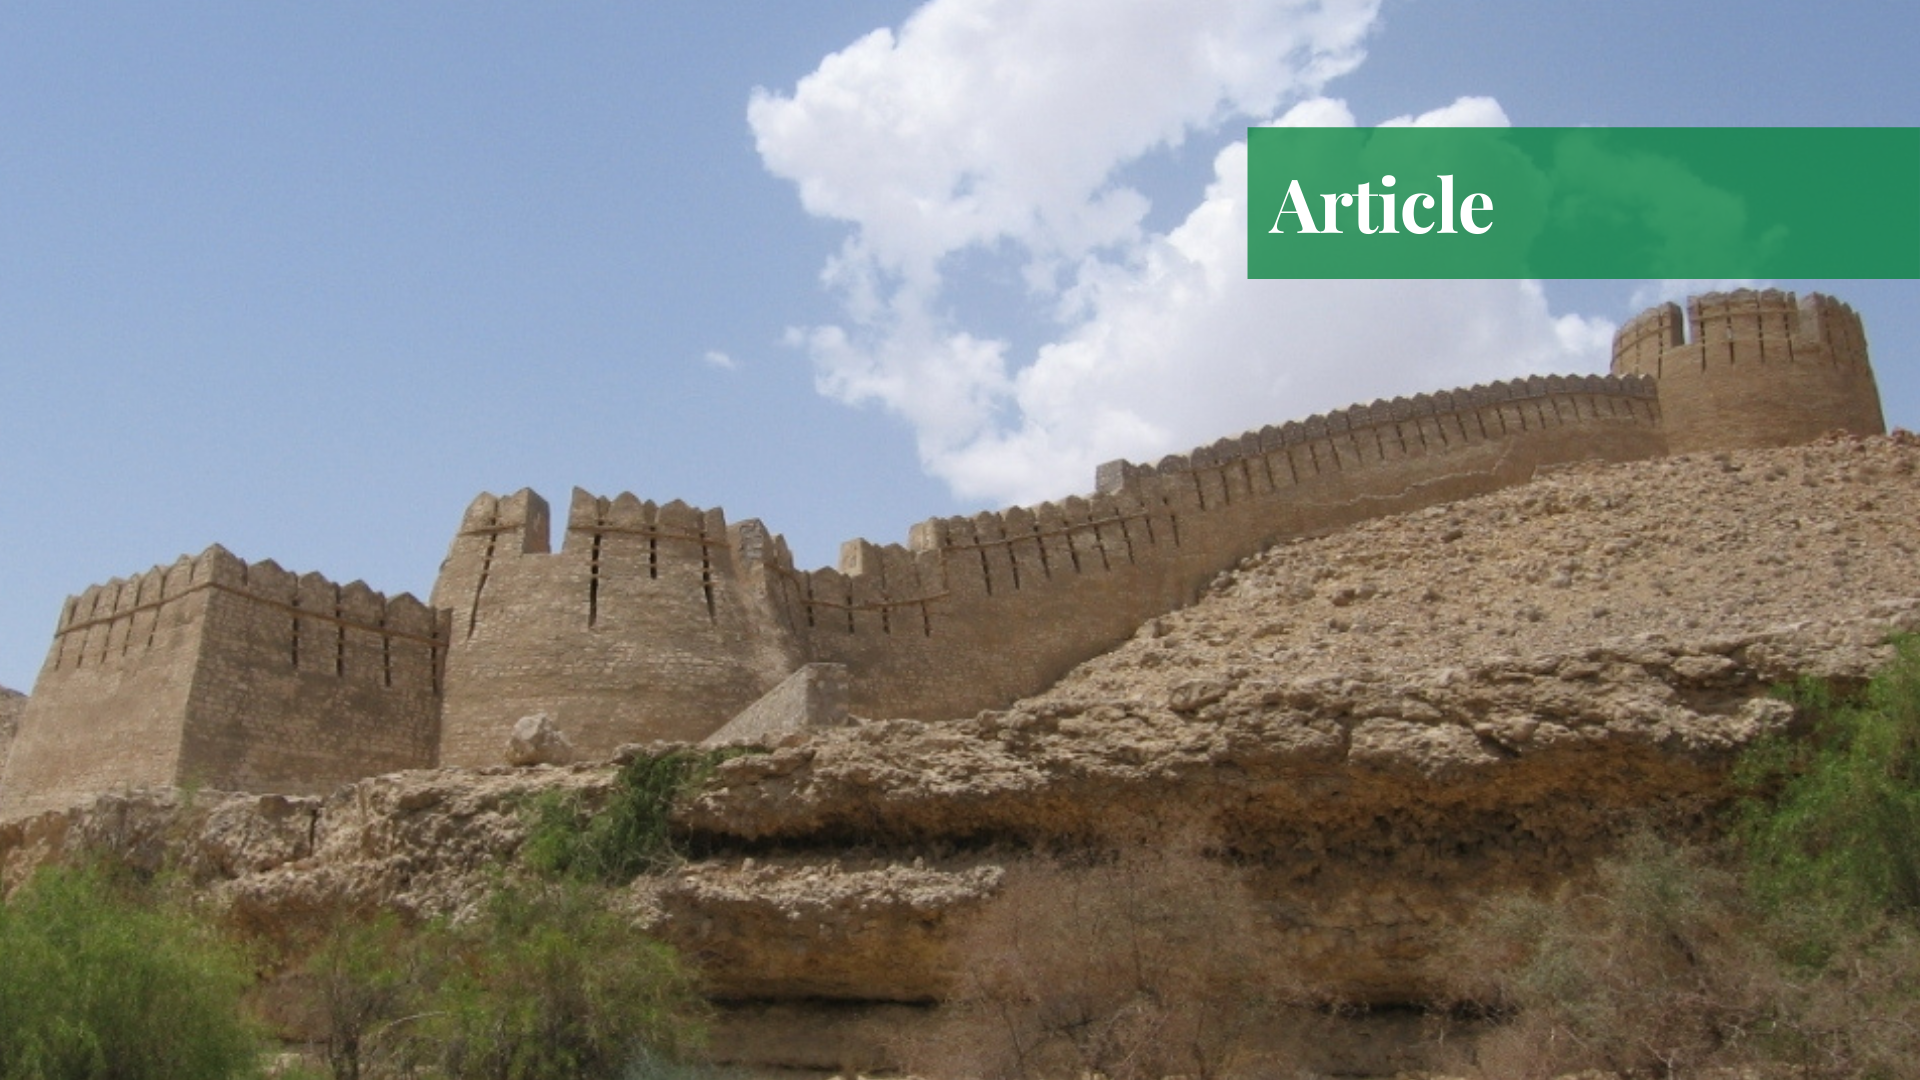 Ranikot Fort in Pakistan: The World's Largest Fort